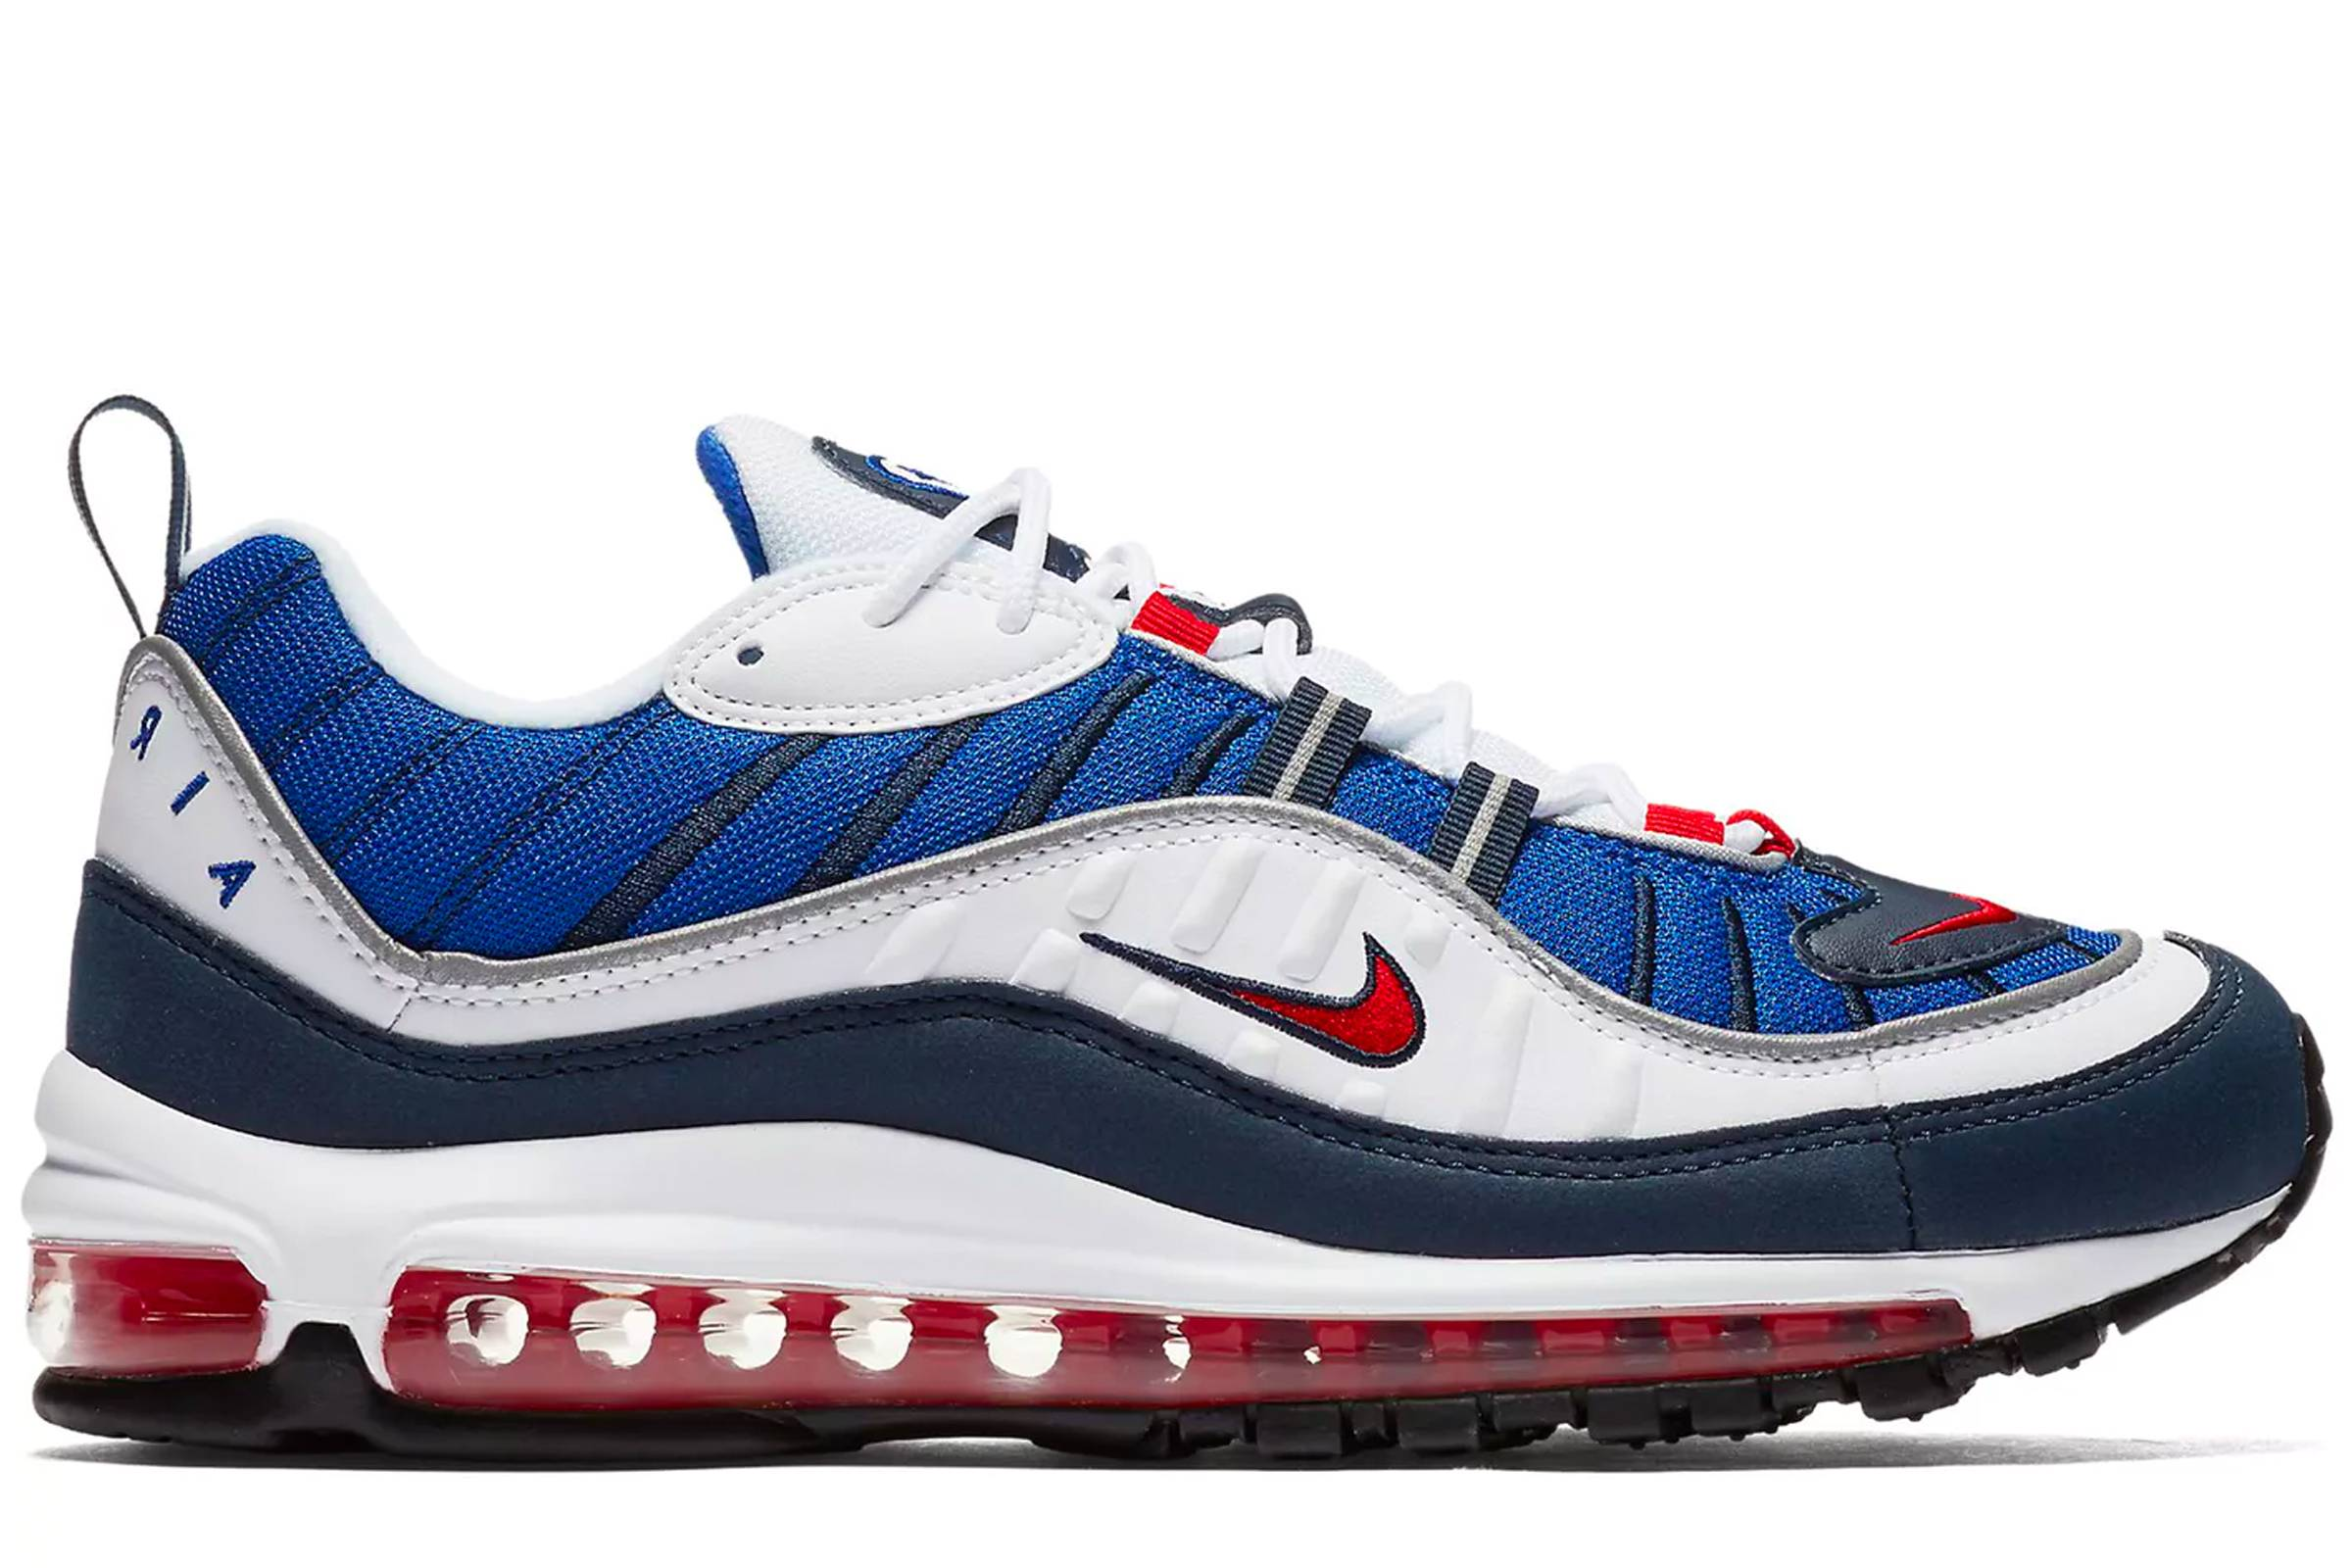 7f9551cd962 Nike s Problem Child  A History of the Air Max 98 - Air Max 98 ...